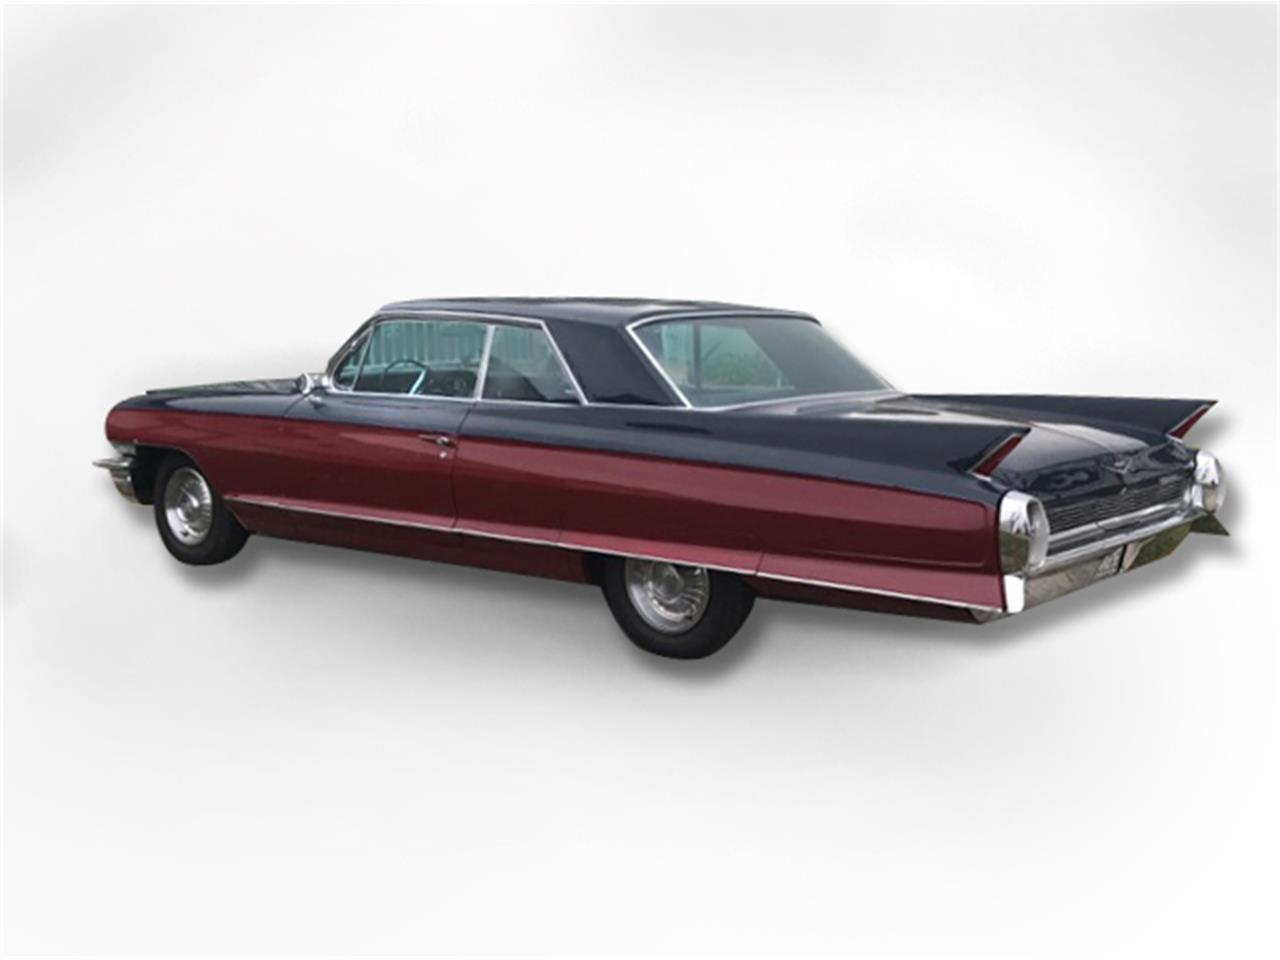 1962 Cadillac Coupe (CC-1063828) for sale in Los Angeles, California